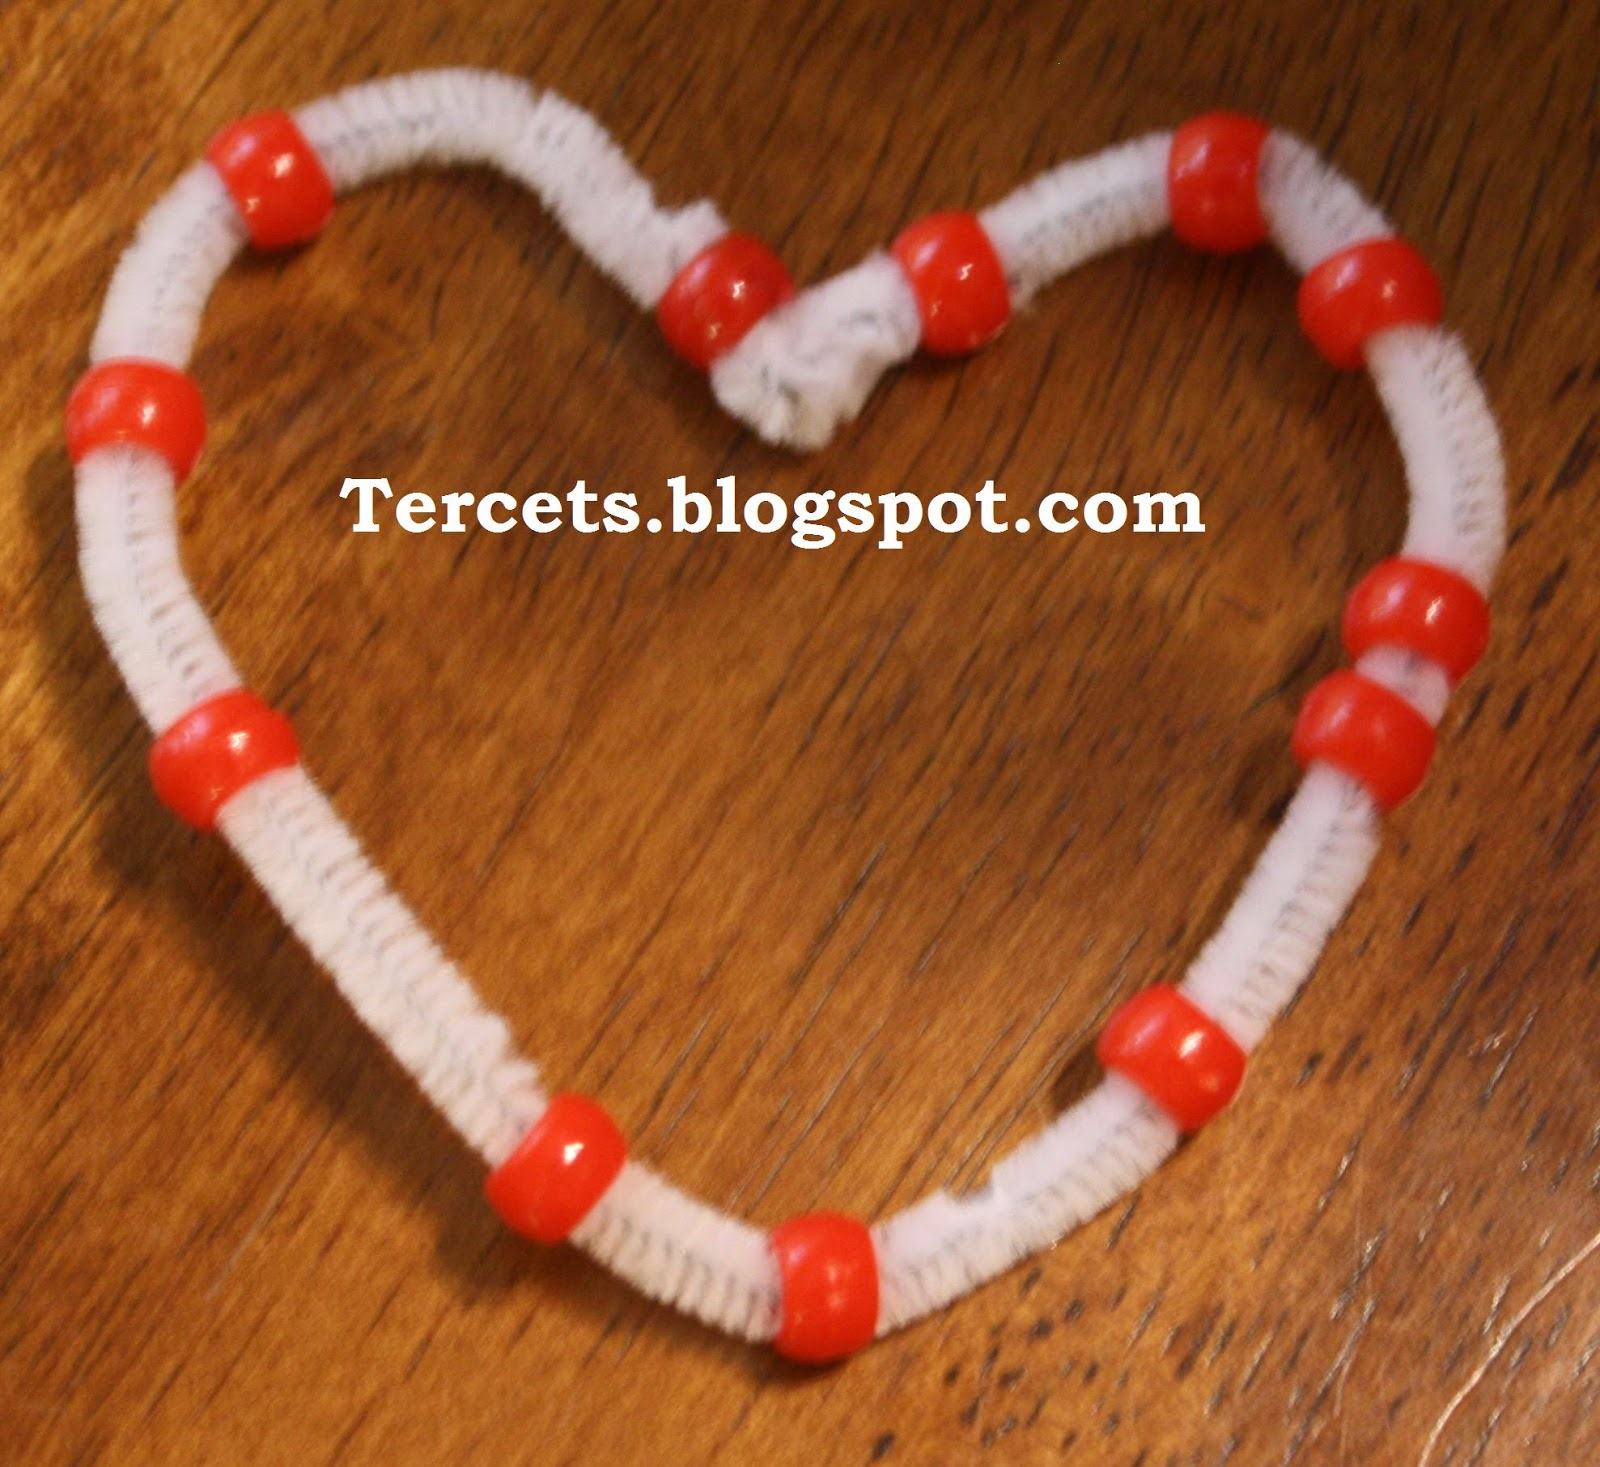 http://tercets.blogspot.com/2013/02/make-heart-rosary-decades-to-pray-for.html